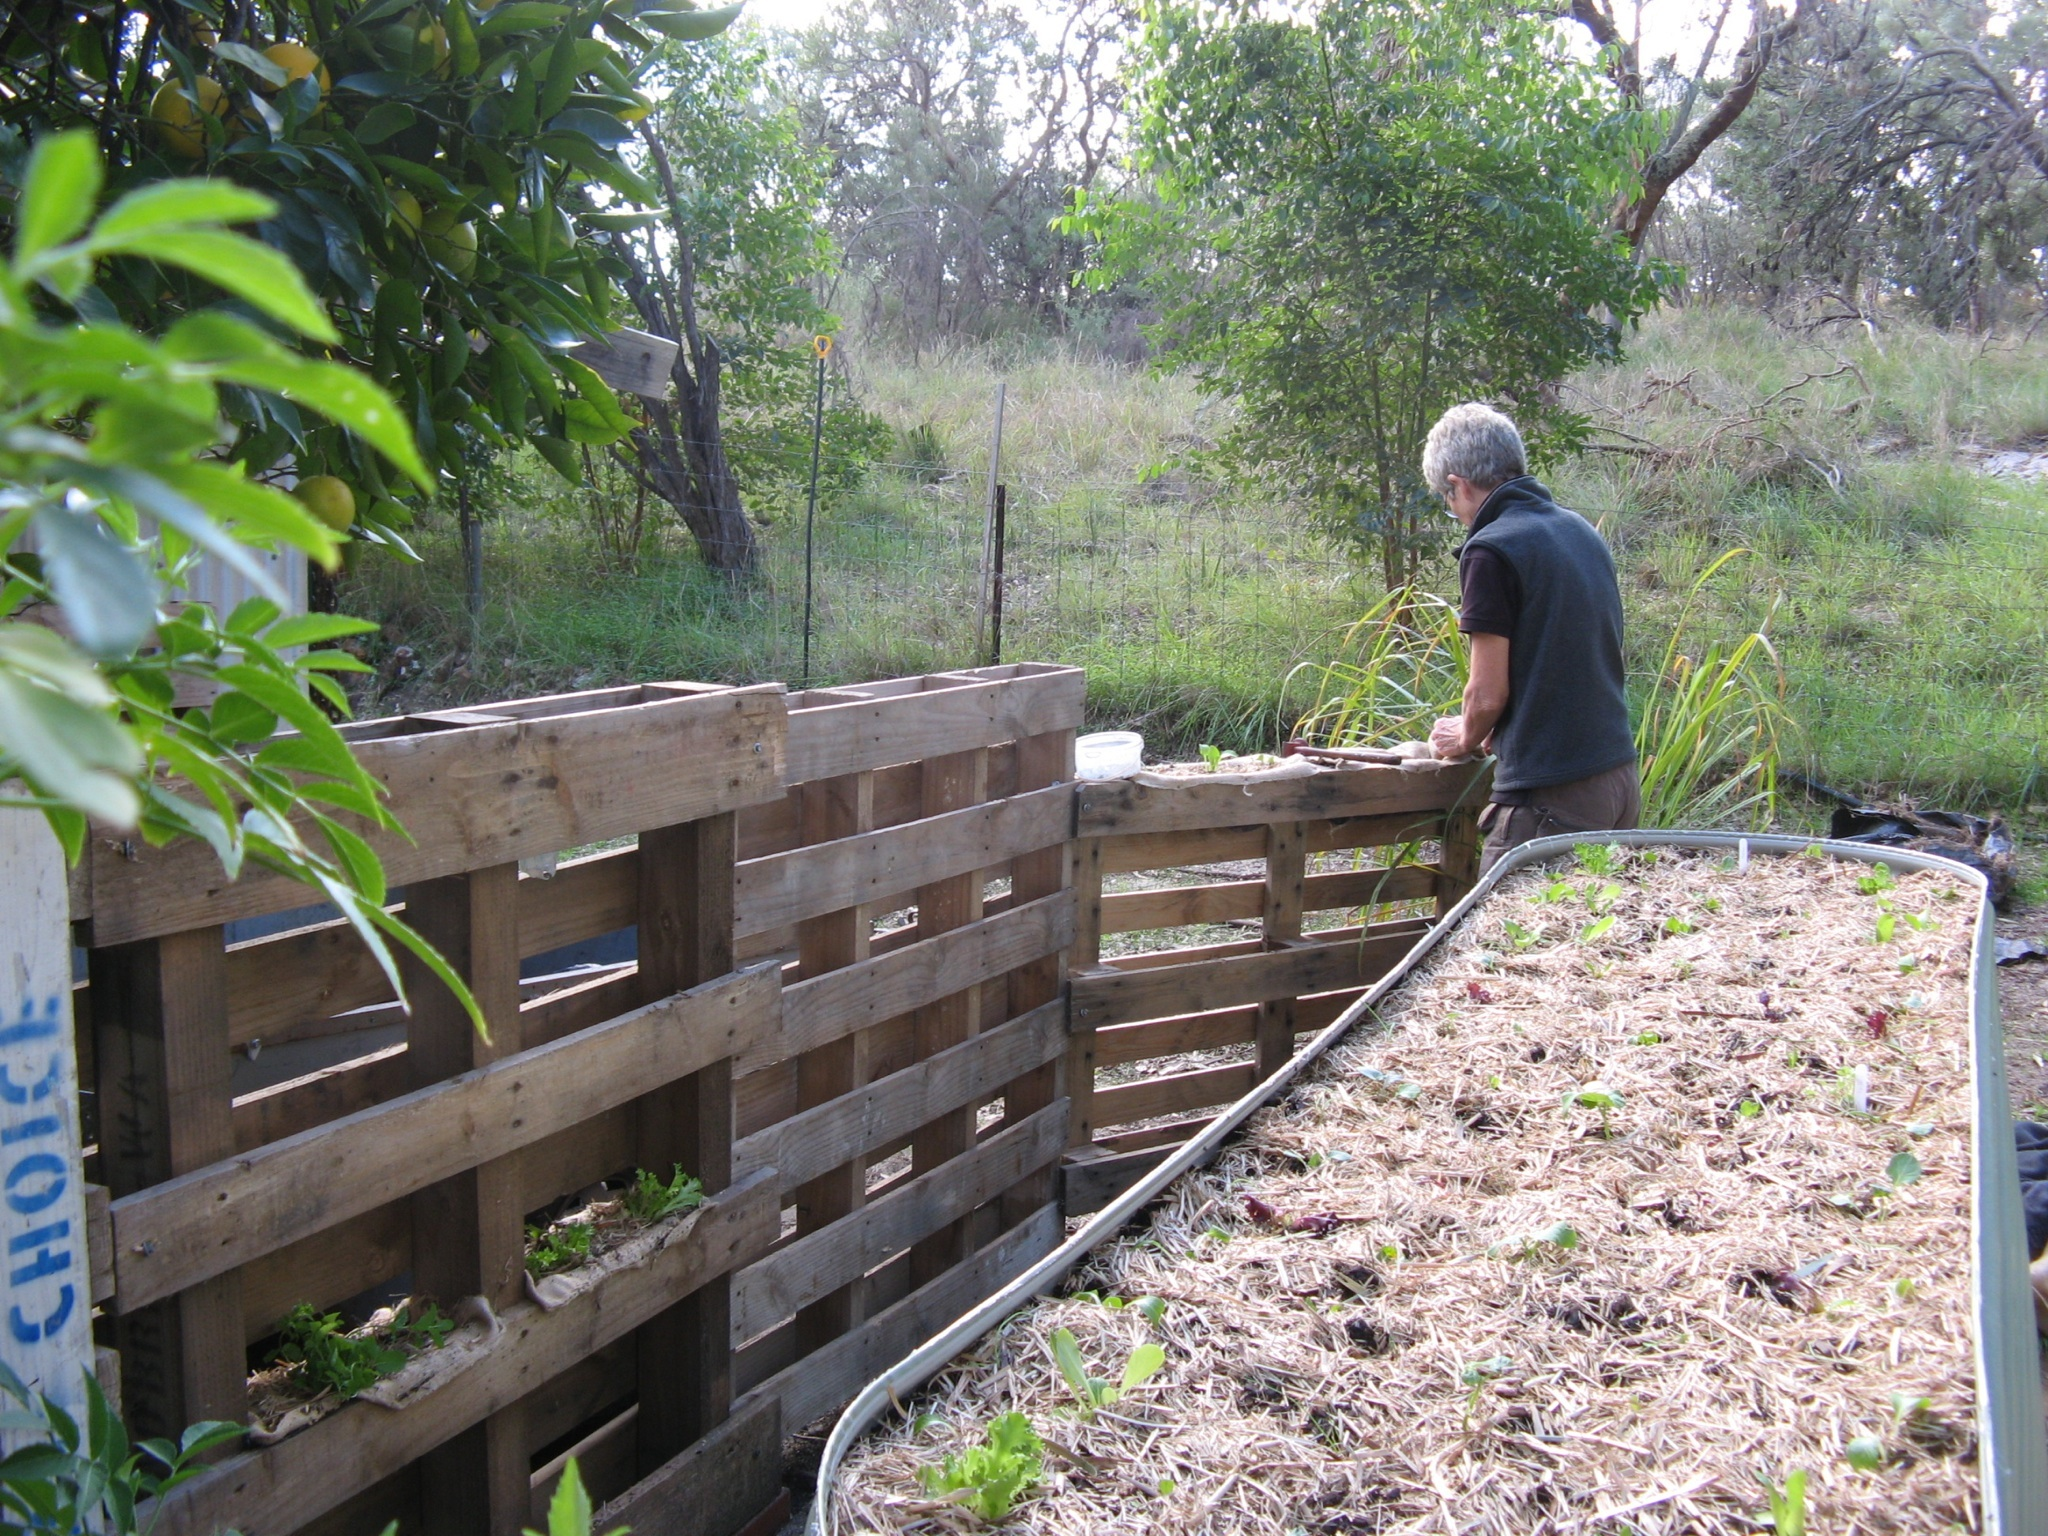 Preparing new garden beds and a pallet garden